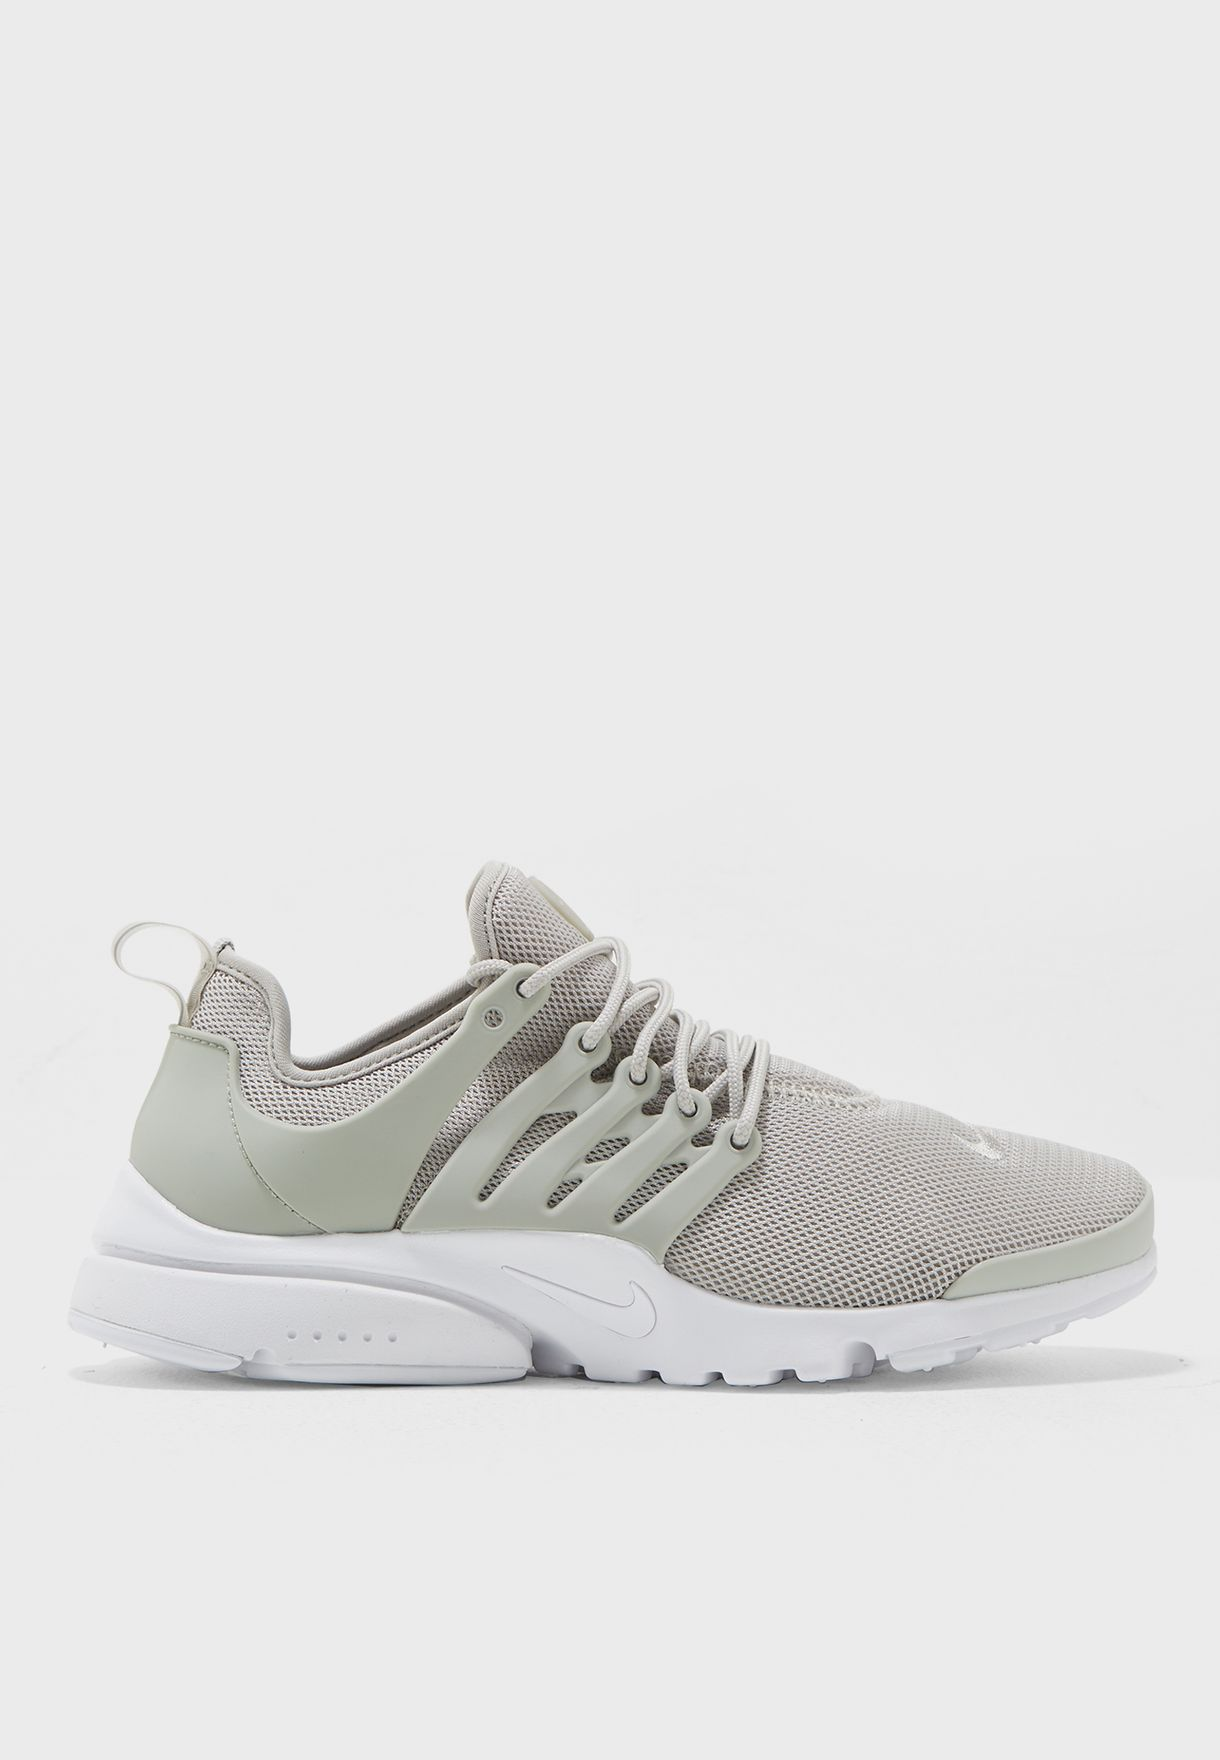 c8173bfe1ca ... italy shop nike grey air presto ultra breeze 896277 001 for women in  saudi ni727sh04kod 7a57b